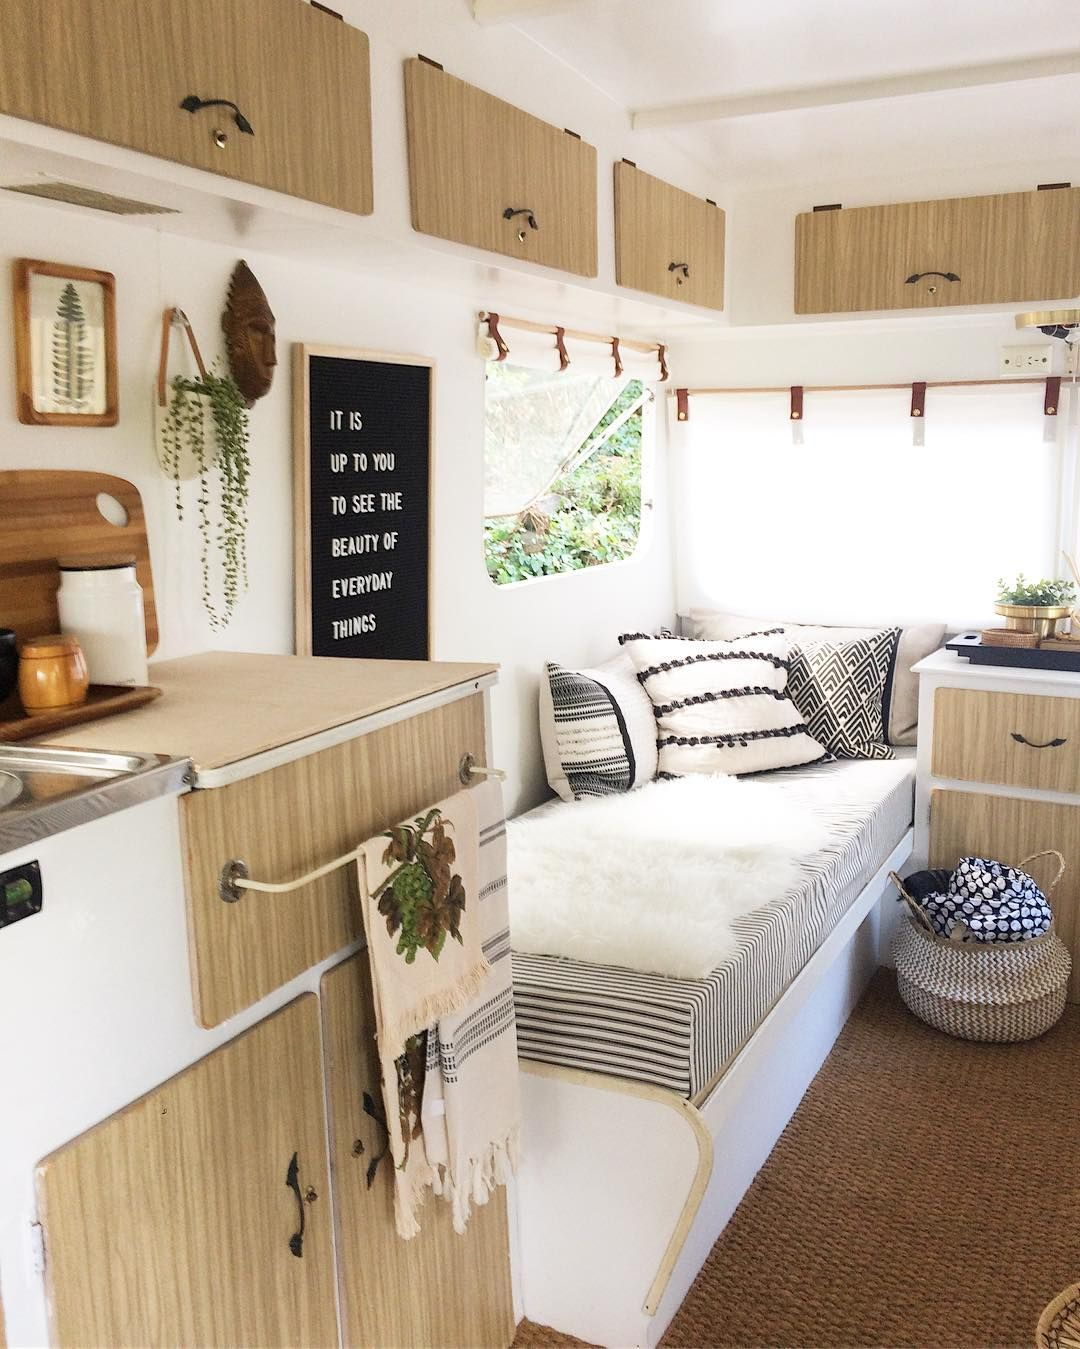 Caravan Kitchen Accessories: Camper Converted To Tiny House Decorating And Living Room